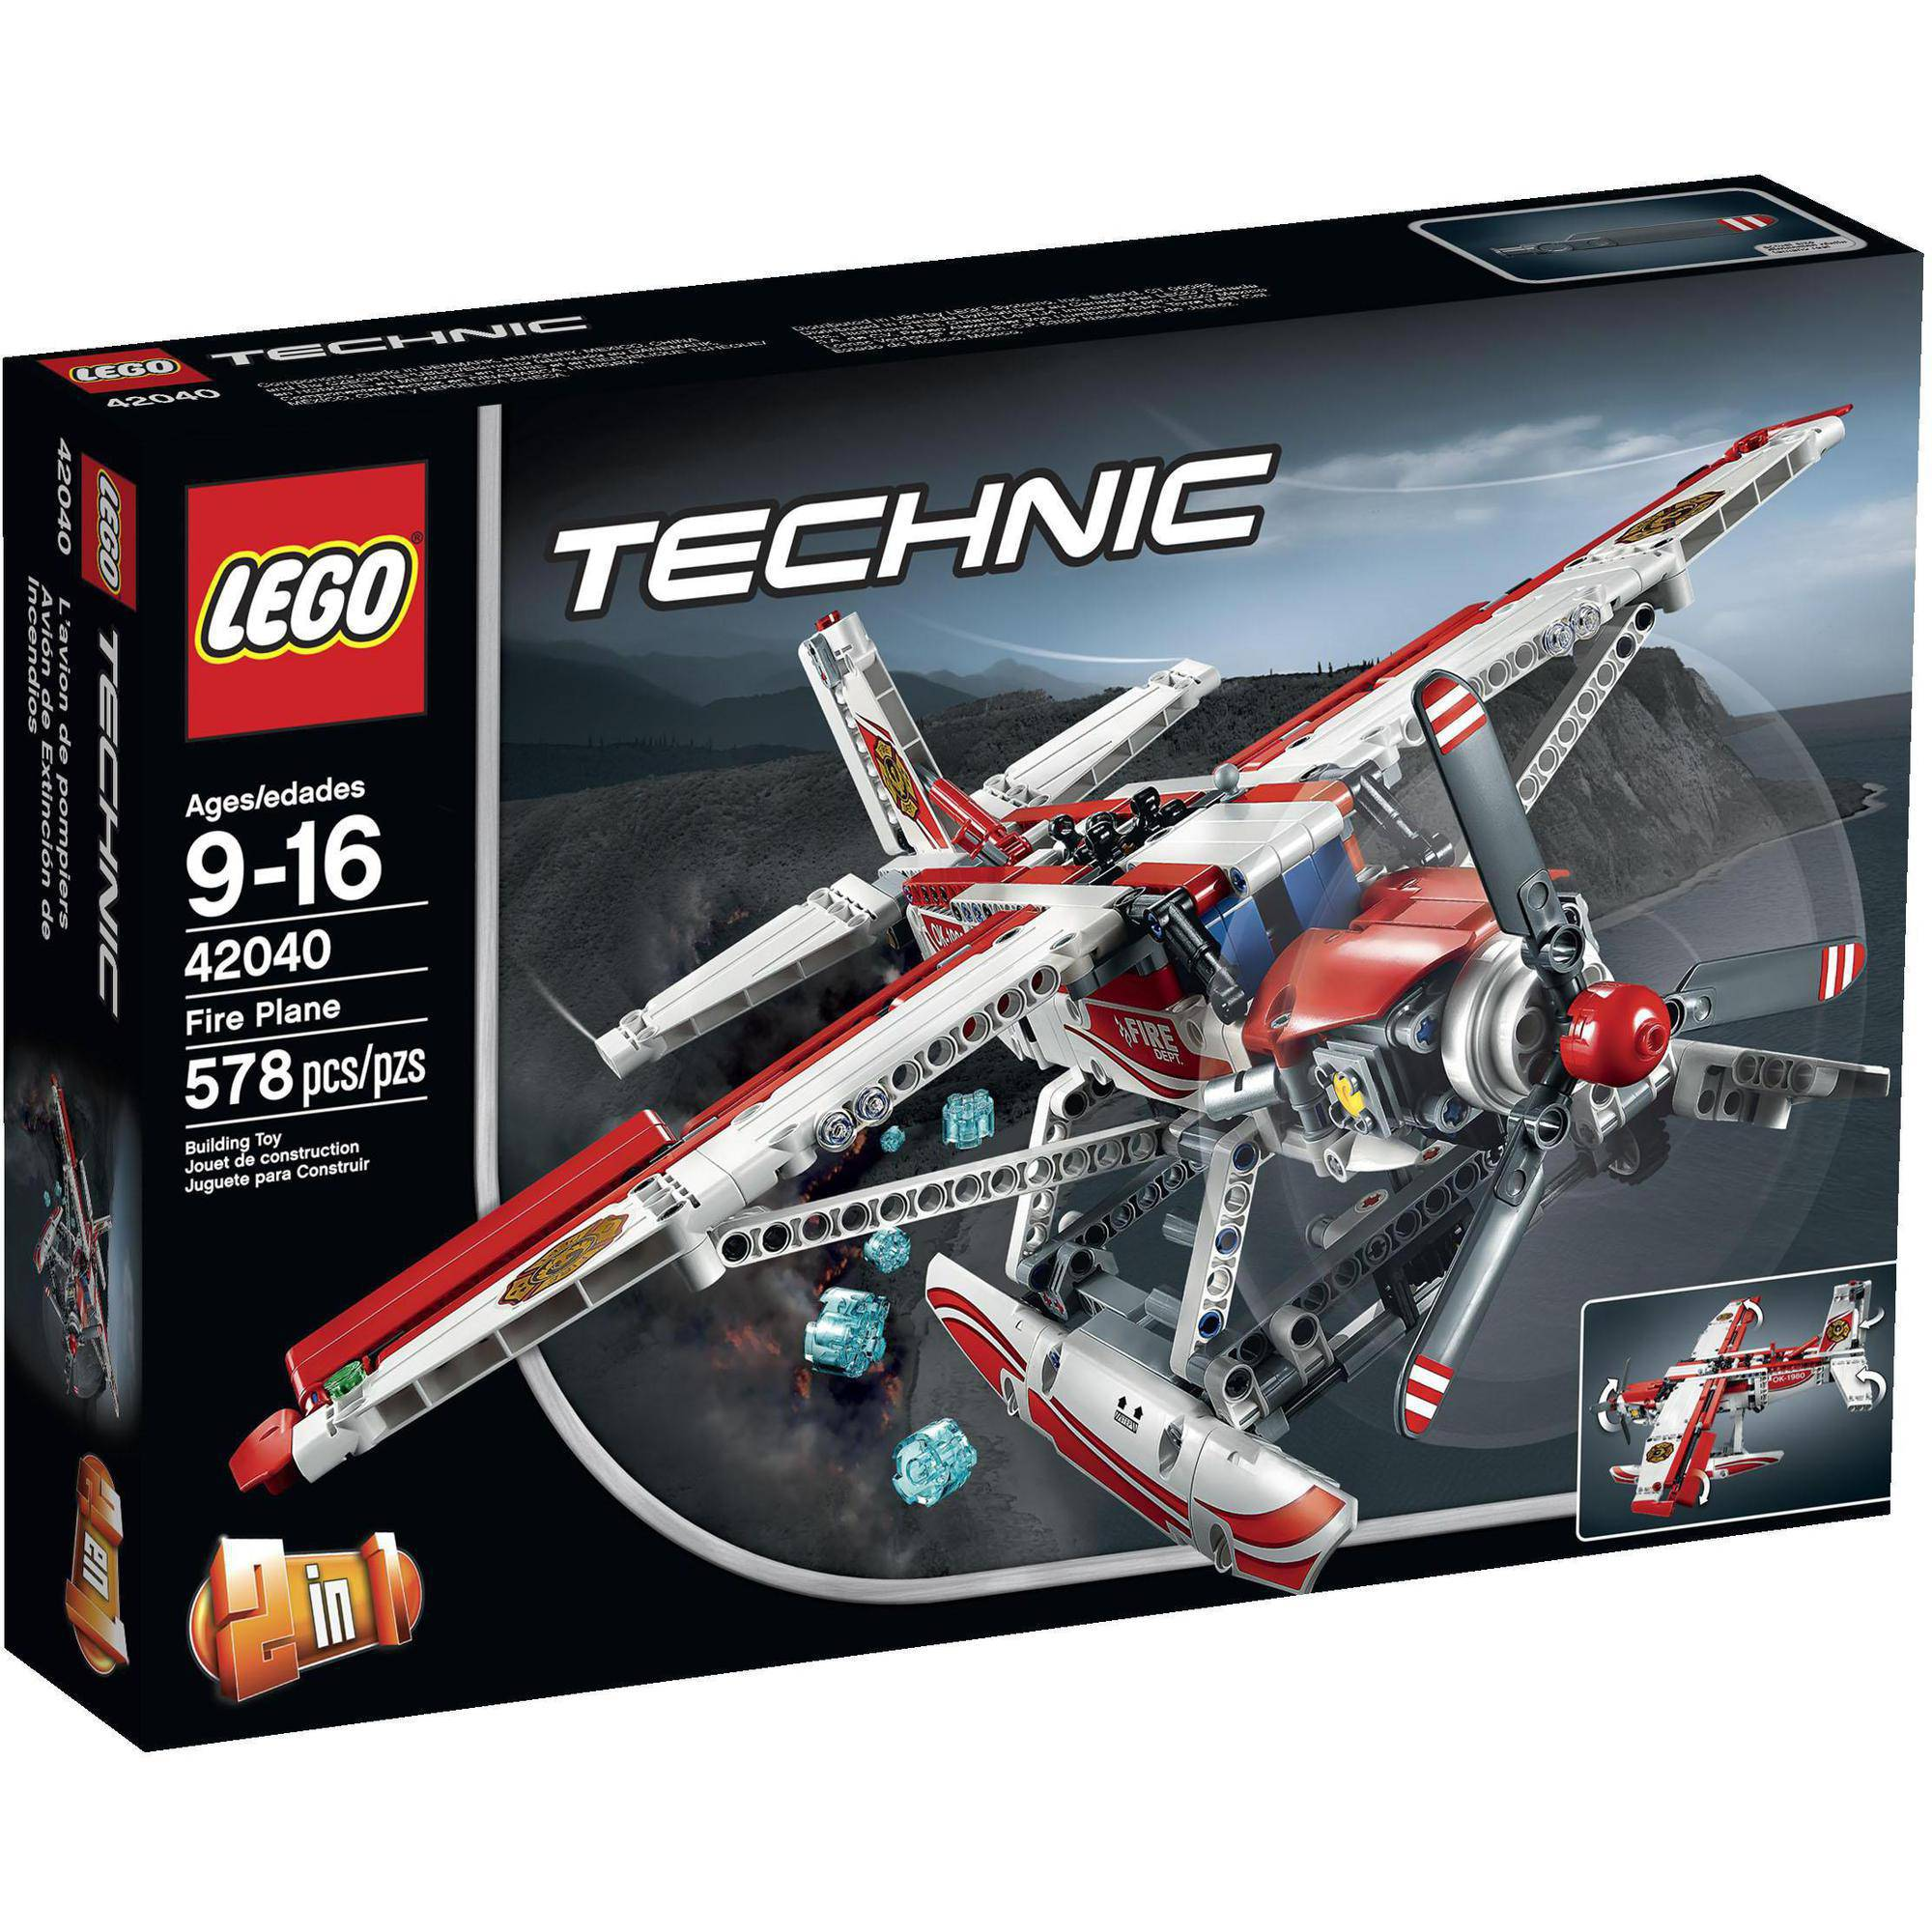 Lego 2-in-1 Technic Fire Plane 42040 by LEGO Systems, Inc.